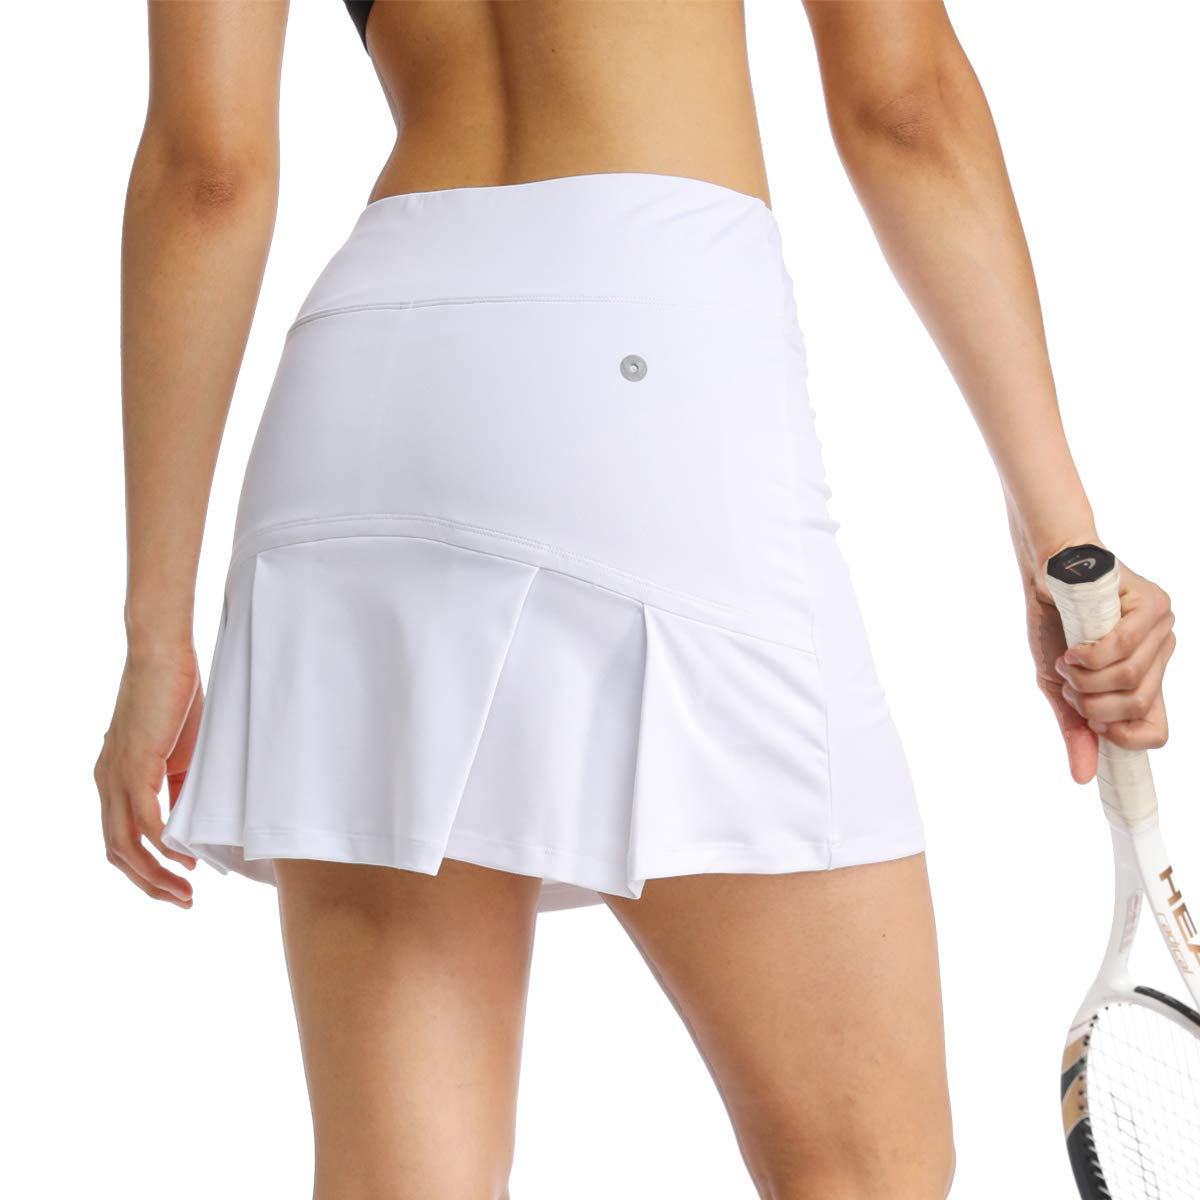 Ibeauti Womens Back Pleated Athletic Tennis Golf Skorts Skirts with 3 Pockets Mesh Shorts for Running Active Workout (White, Small) by Ibeauti